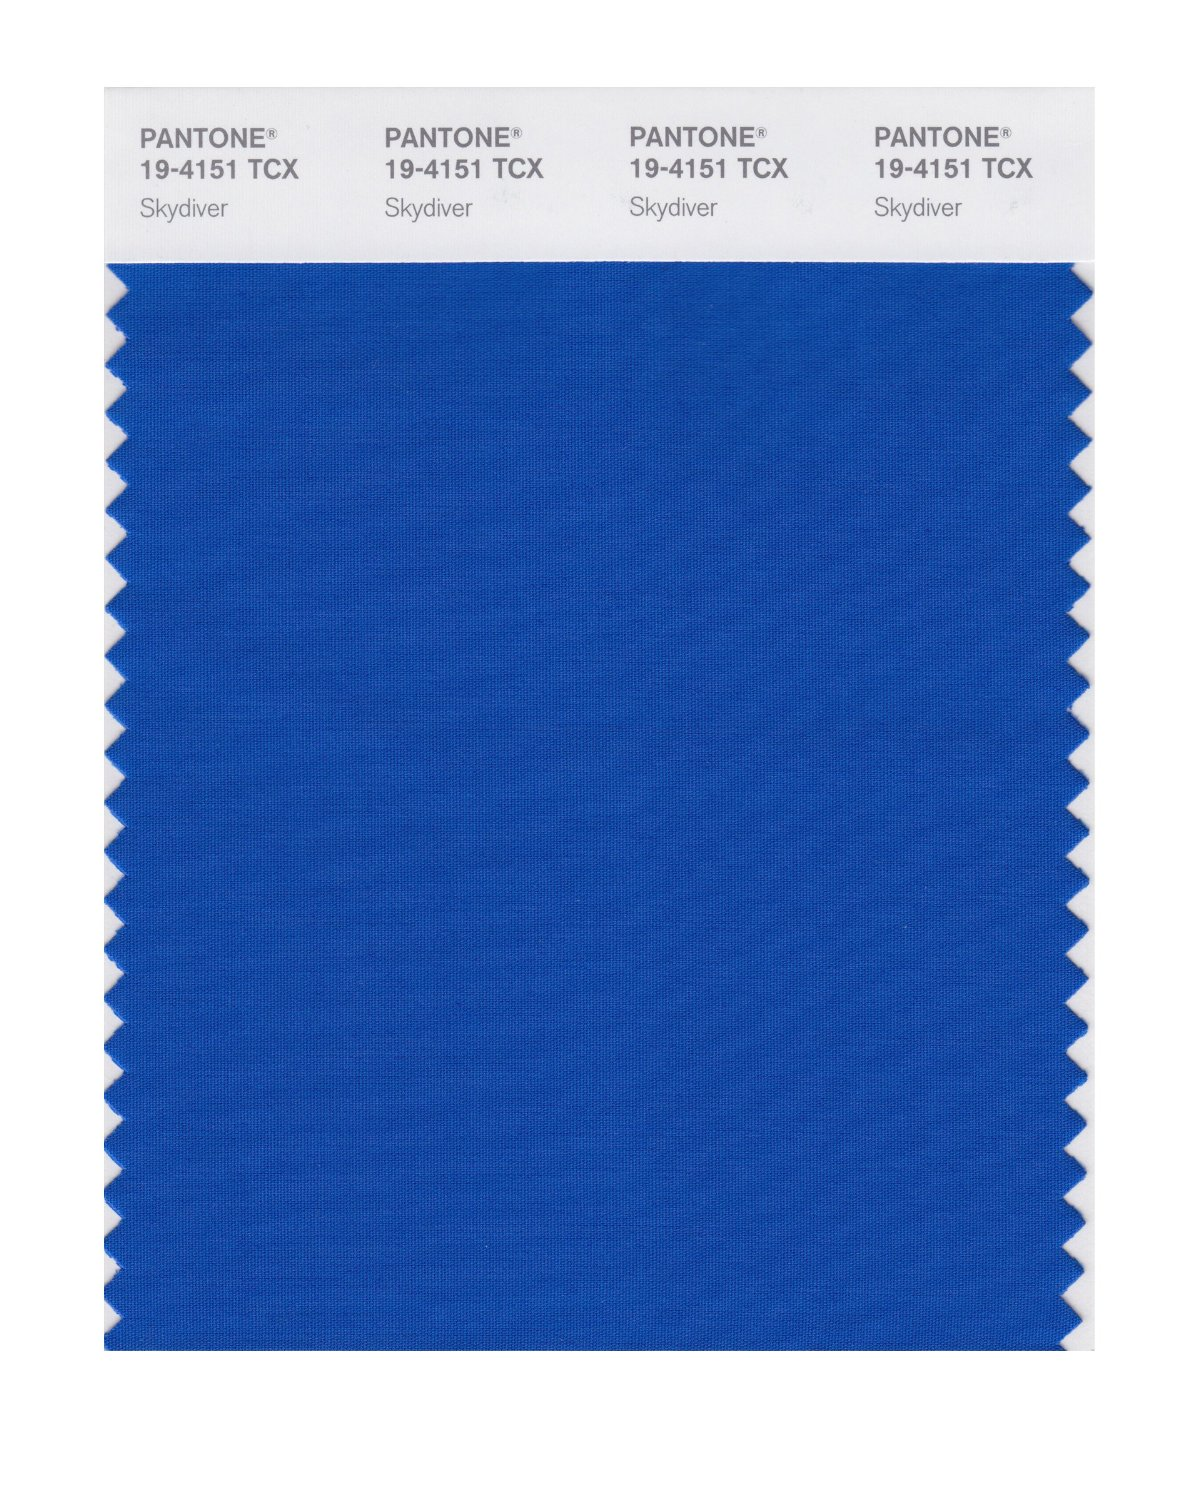 Pantone Smart Swatch 19-4151 Skydiver